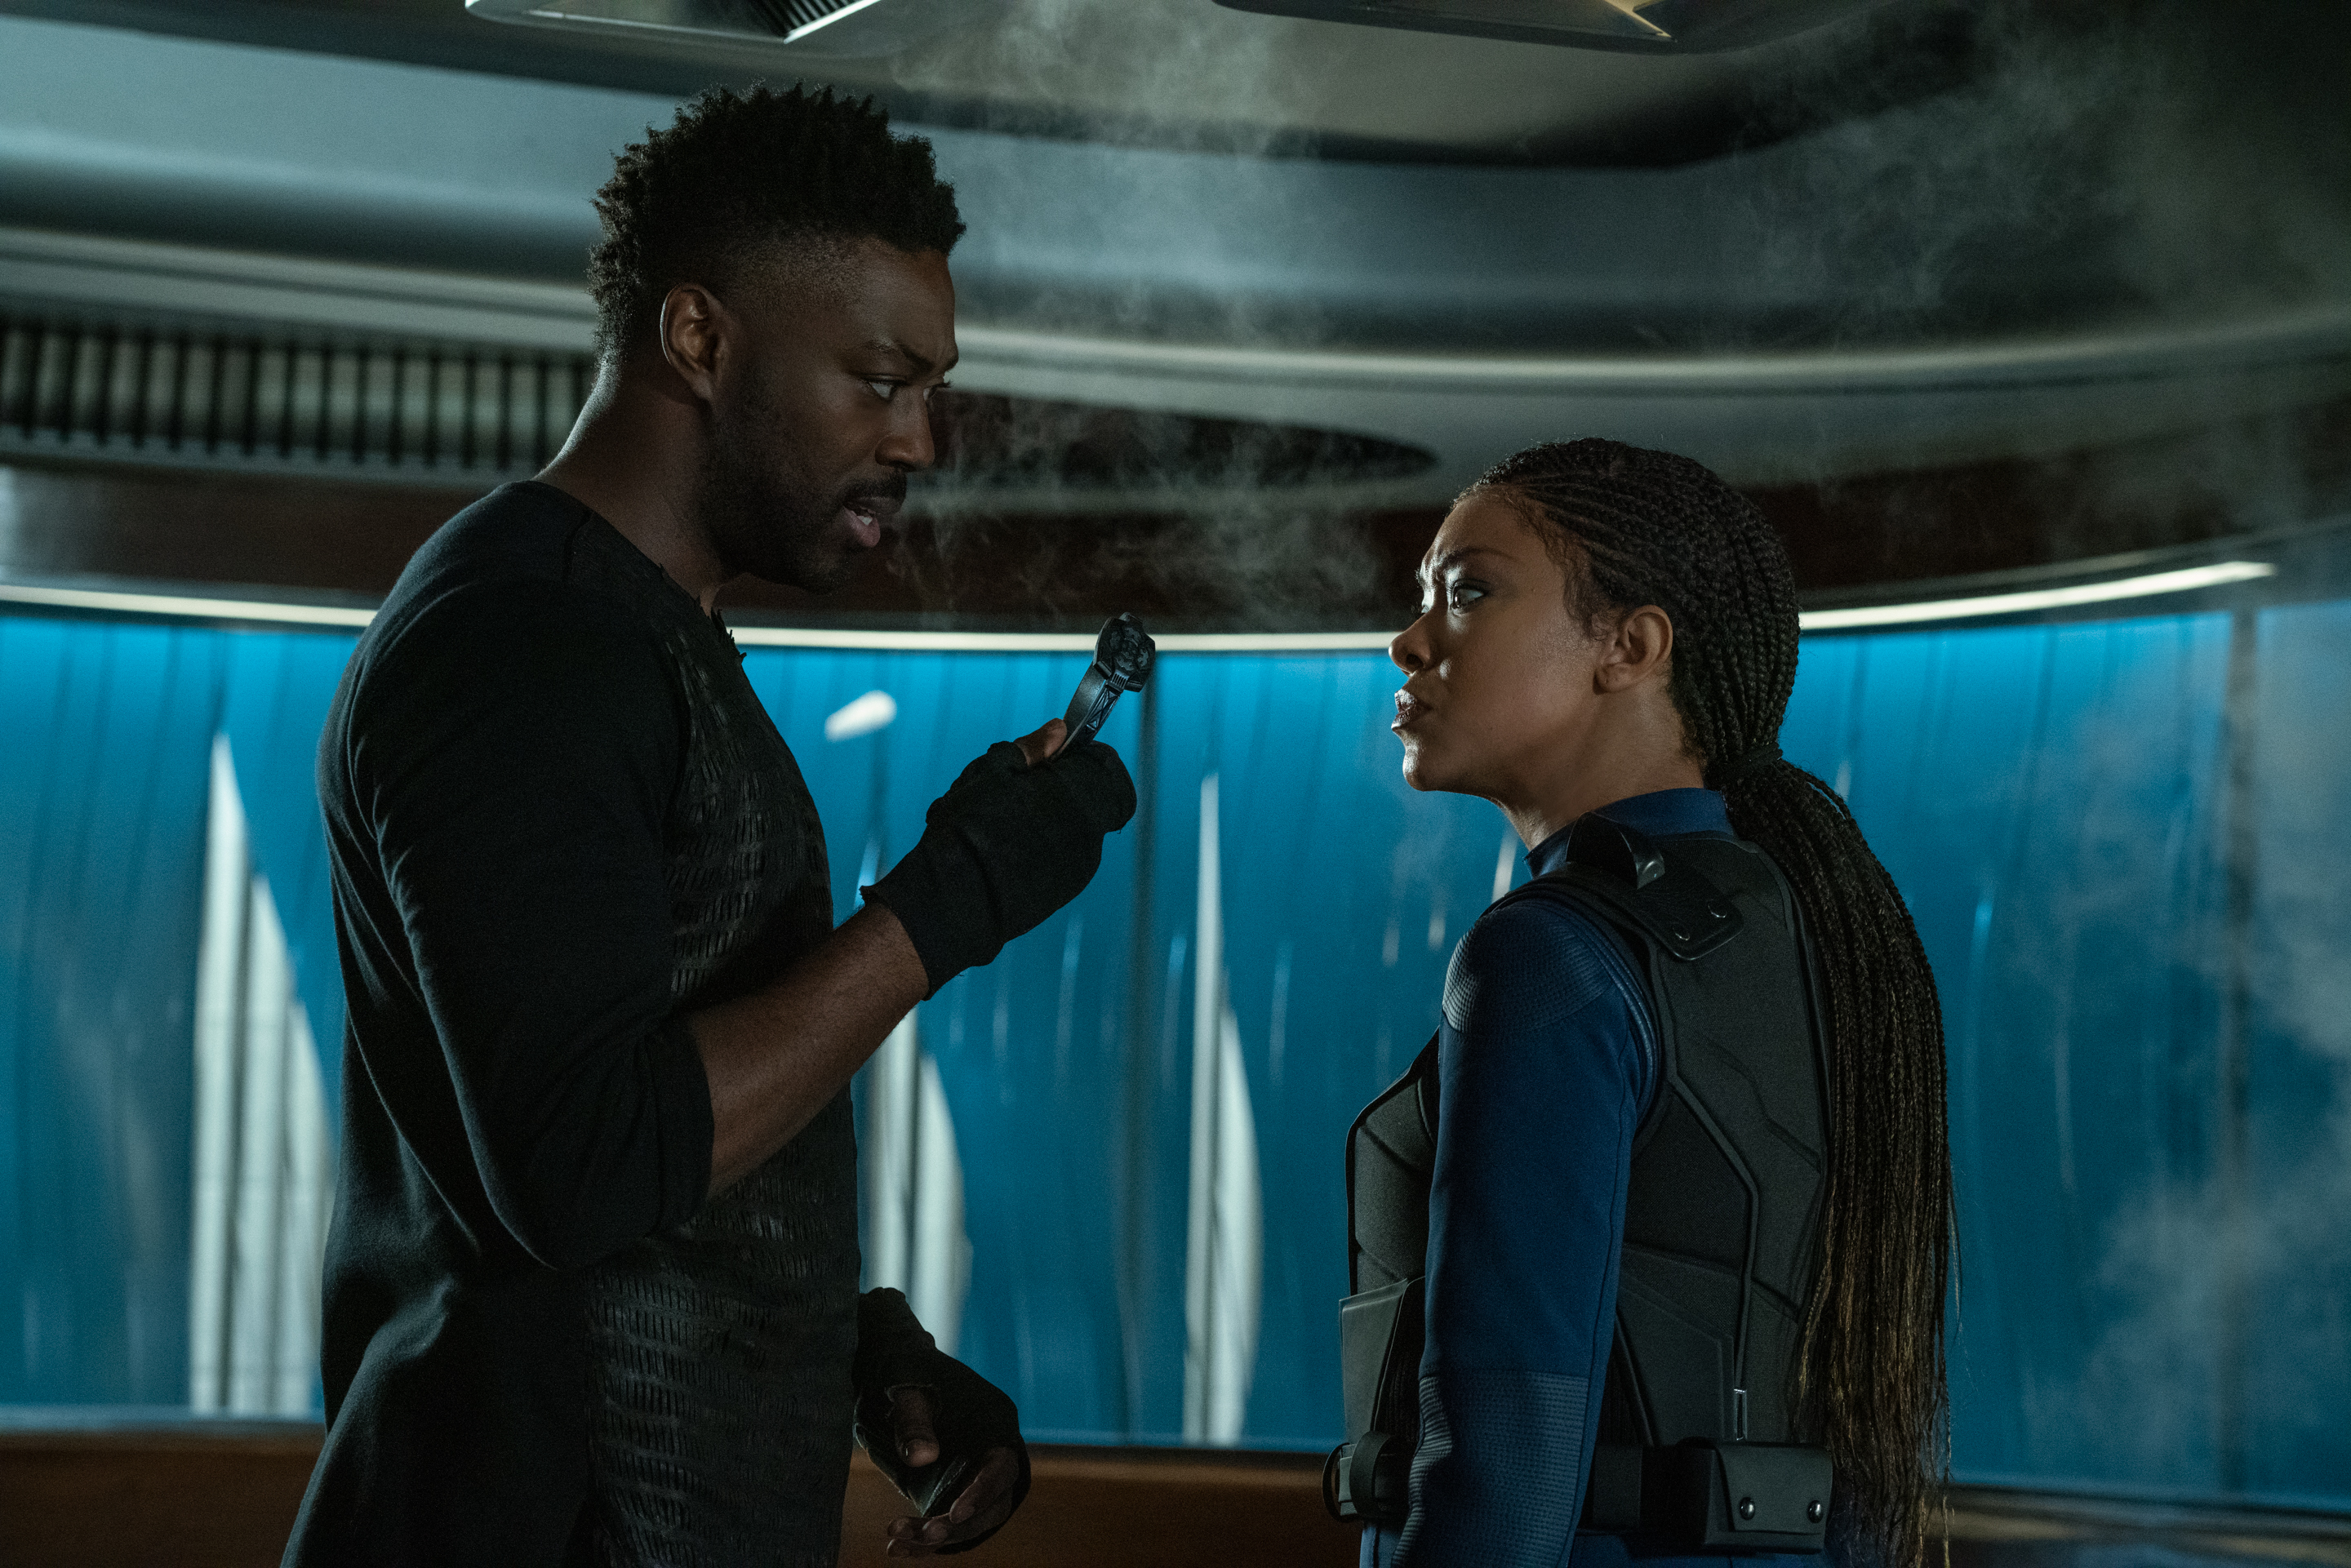 """""""There Is A Tide..."""" — Ep#312 — Pictured (L-R): David Ajala as Book and Sonequa Martin-Green as Commander Burnham of the CBS All Access series STAR TREK: DISCOVERY. Photo Cr: Michael Gibson/CBS ©2020 CBS Interactive, Inc. All Rights Reserved."""